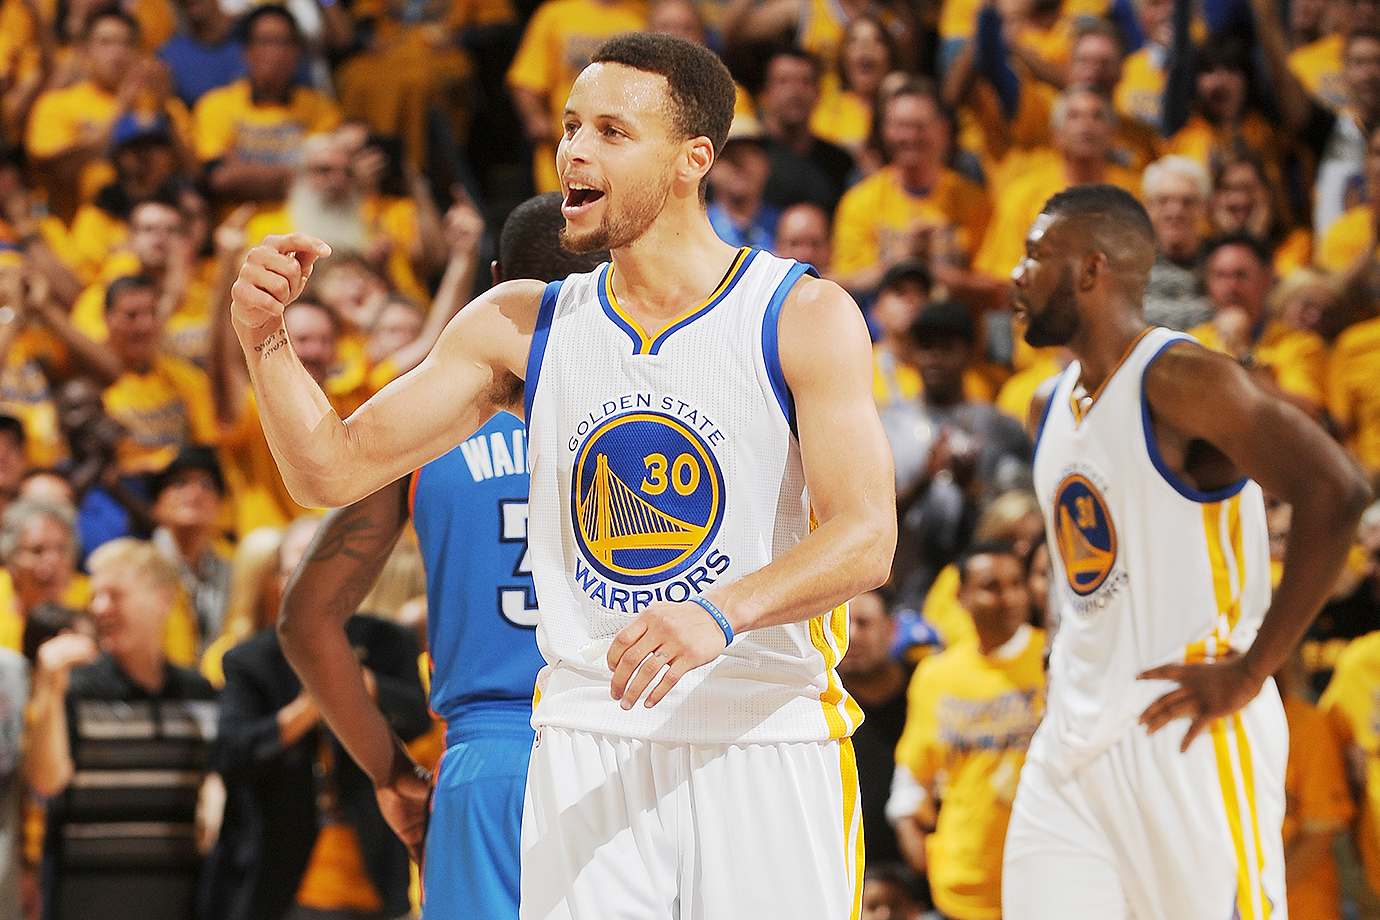 The Golden State Warriors, fresh off their record 73-win season, rallied to topple Kevin Durant and the Oklahoma City Thunder in a 96–88 Game 7 classic. Led by their backcourt duo Stephen Curry and Klay Thompson, the Warriors can win their third-ever NBA title.